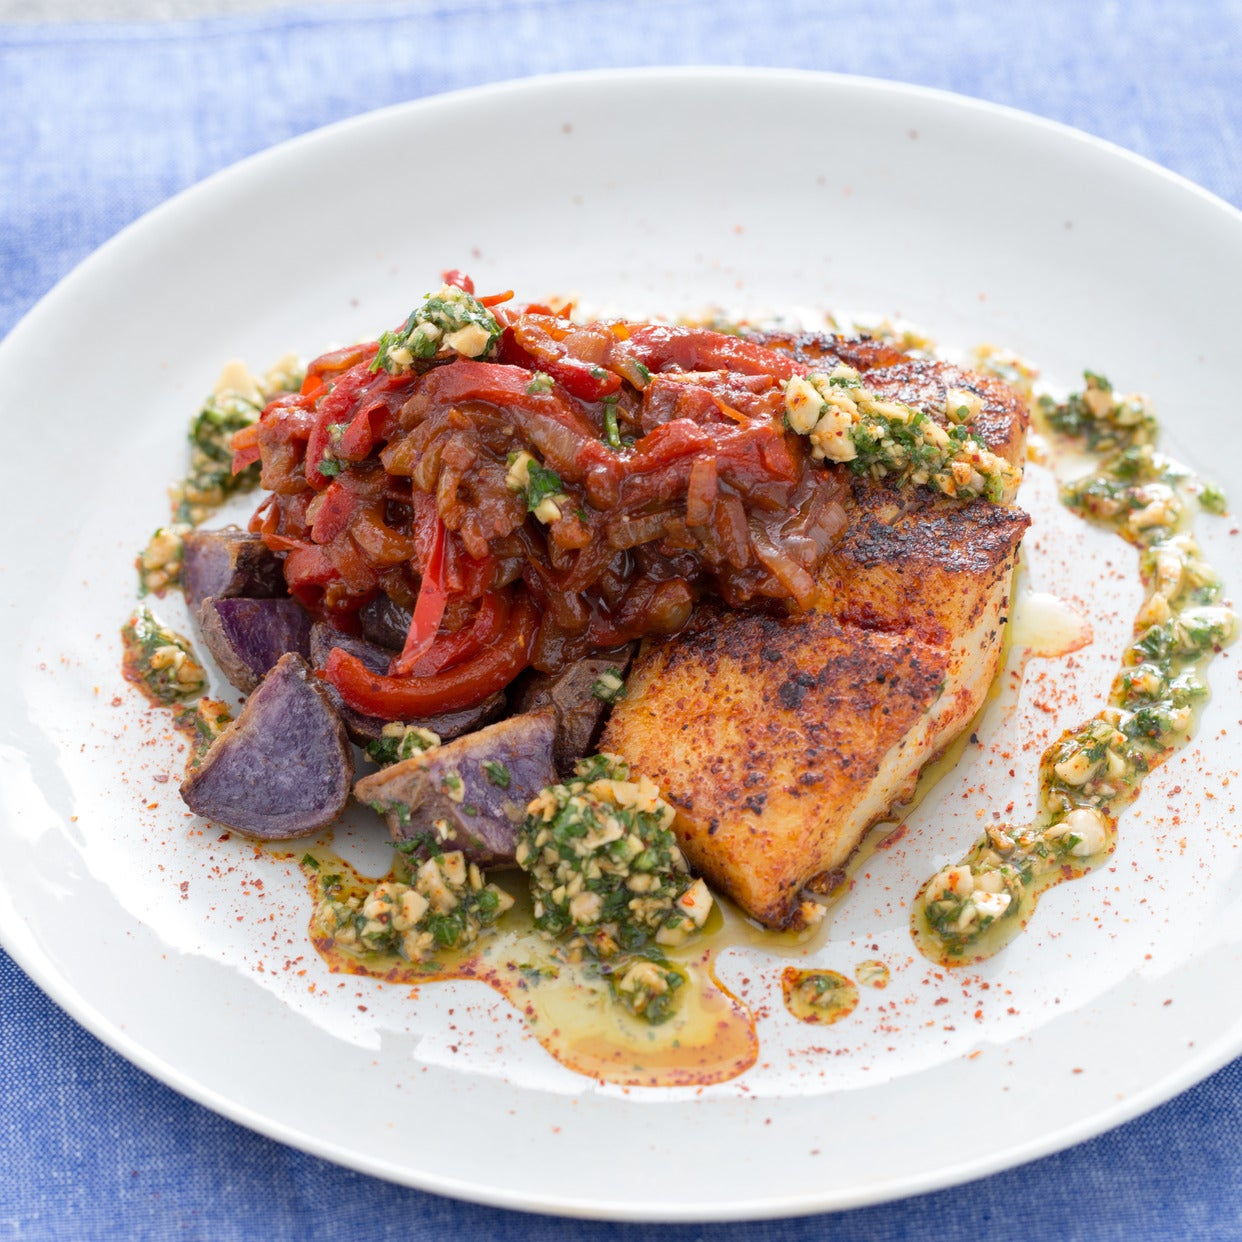 Seared Cod Piperade with Roasted Blue Potatoes & Parsley-Almond Sauce